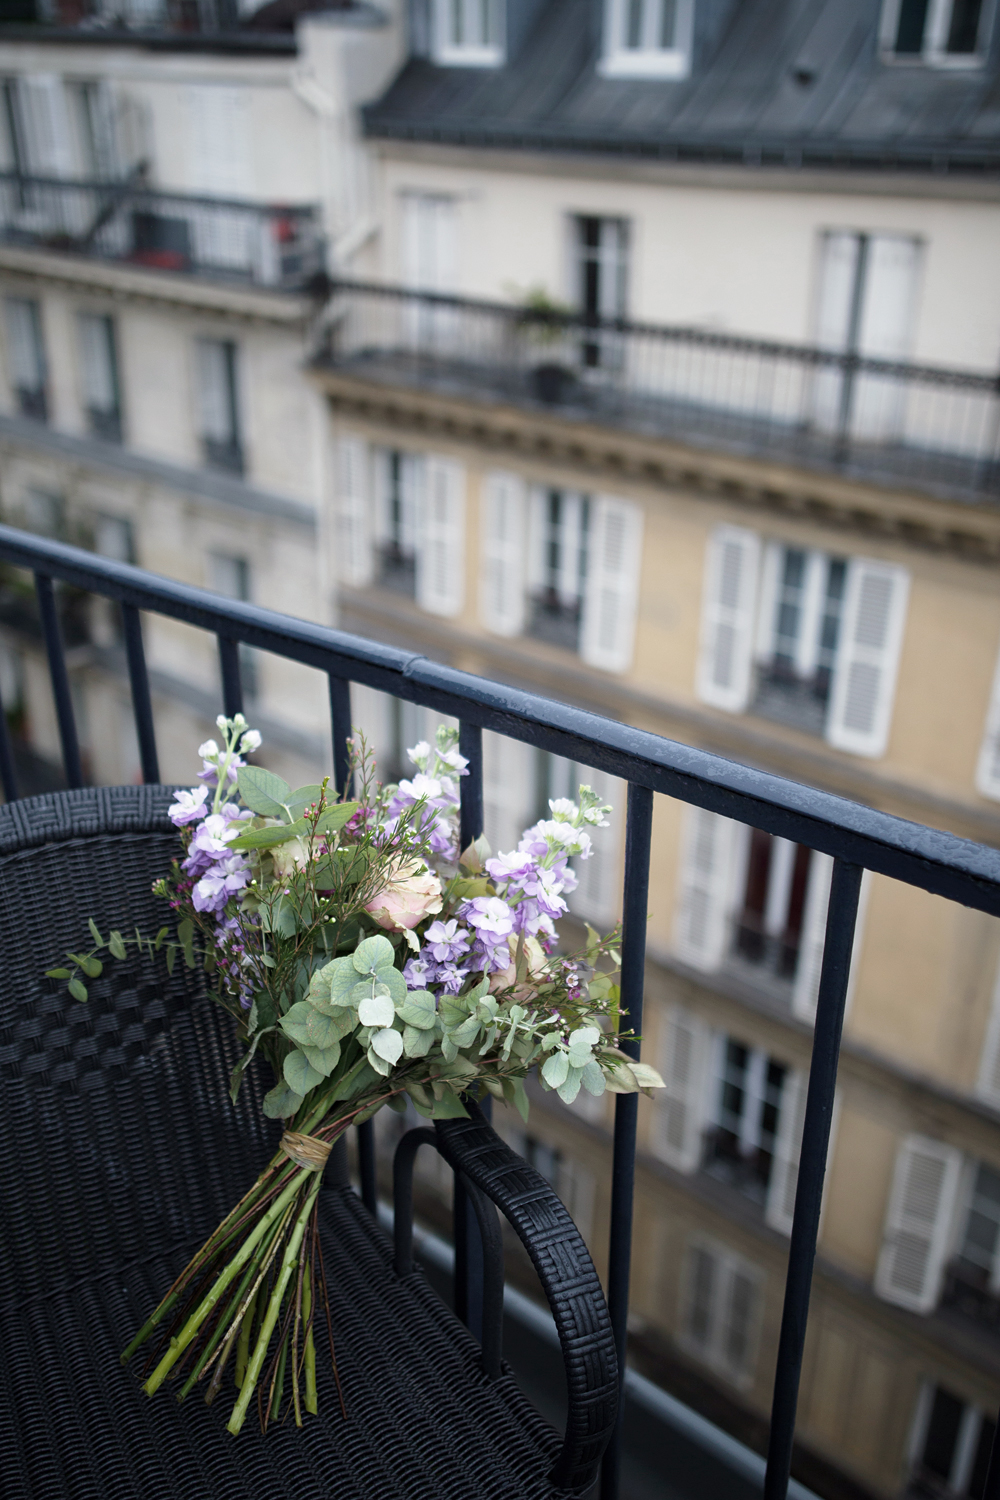 05paris-france-rooftop-travel-style-flowers